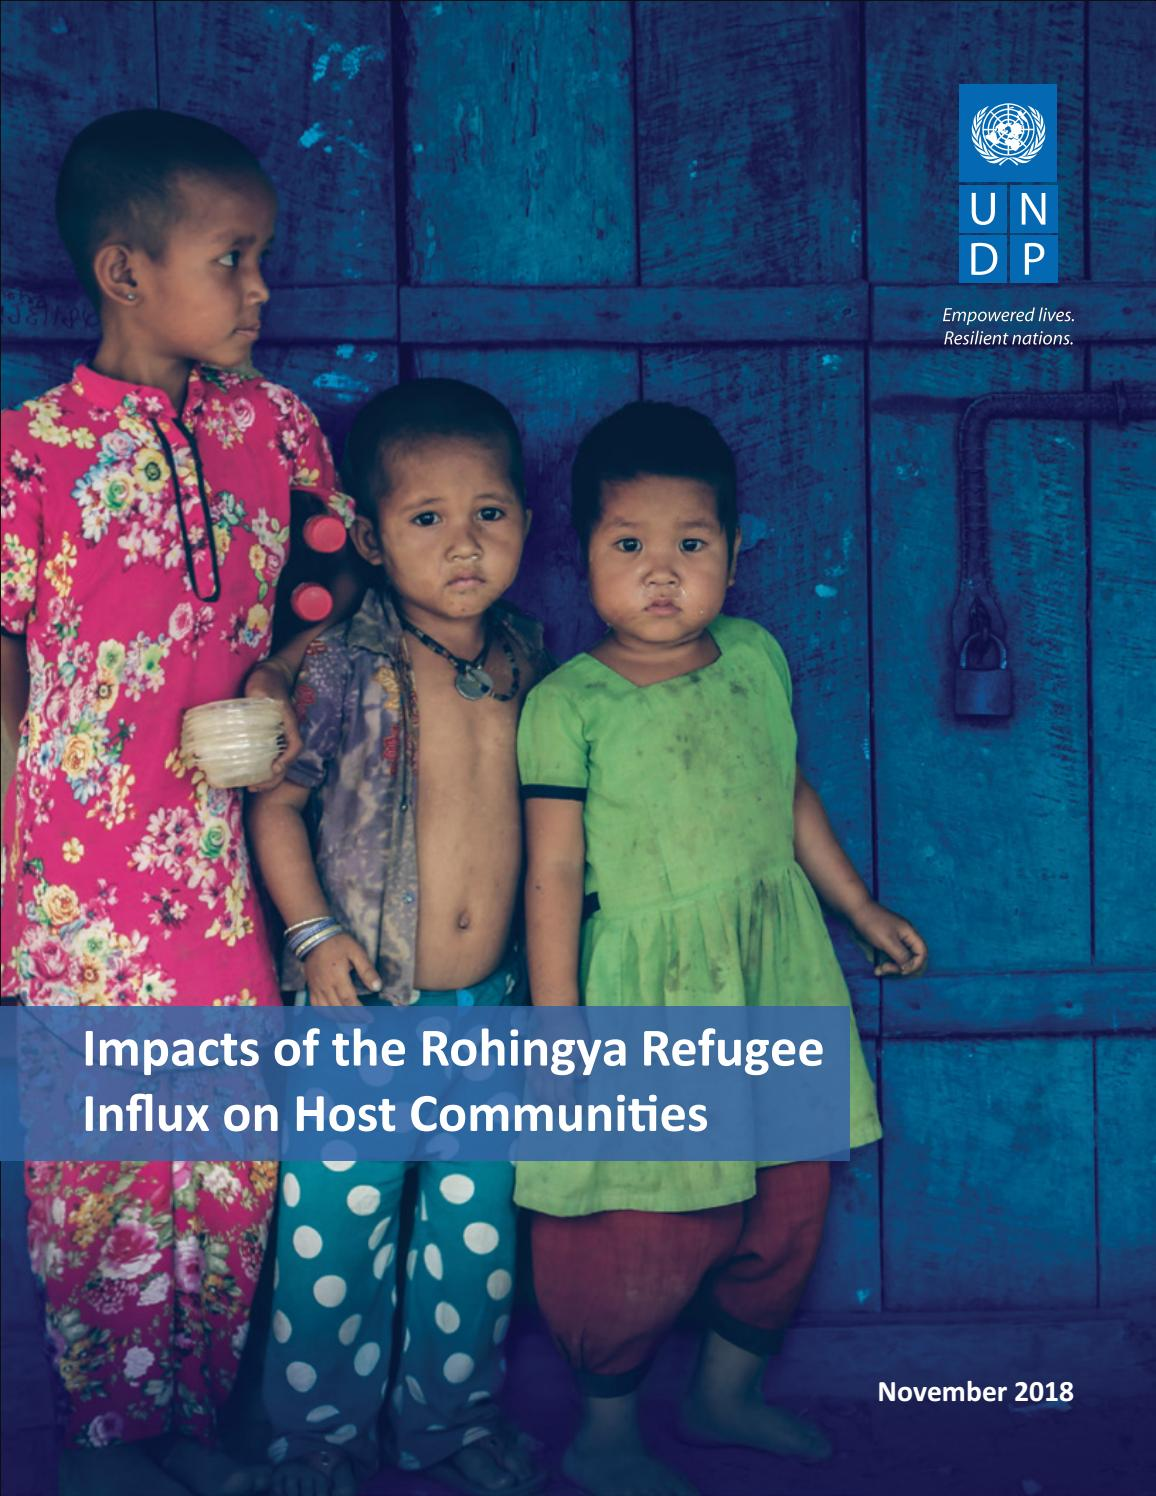 Impacts Of The Rohingya Refugee Influx On Host Communities By Undp